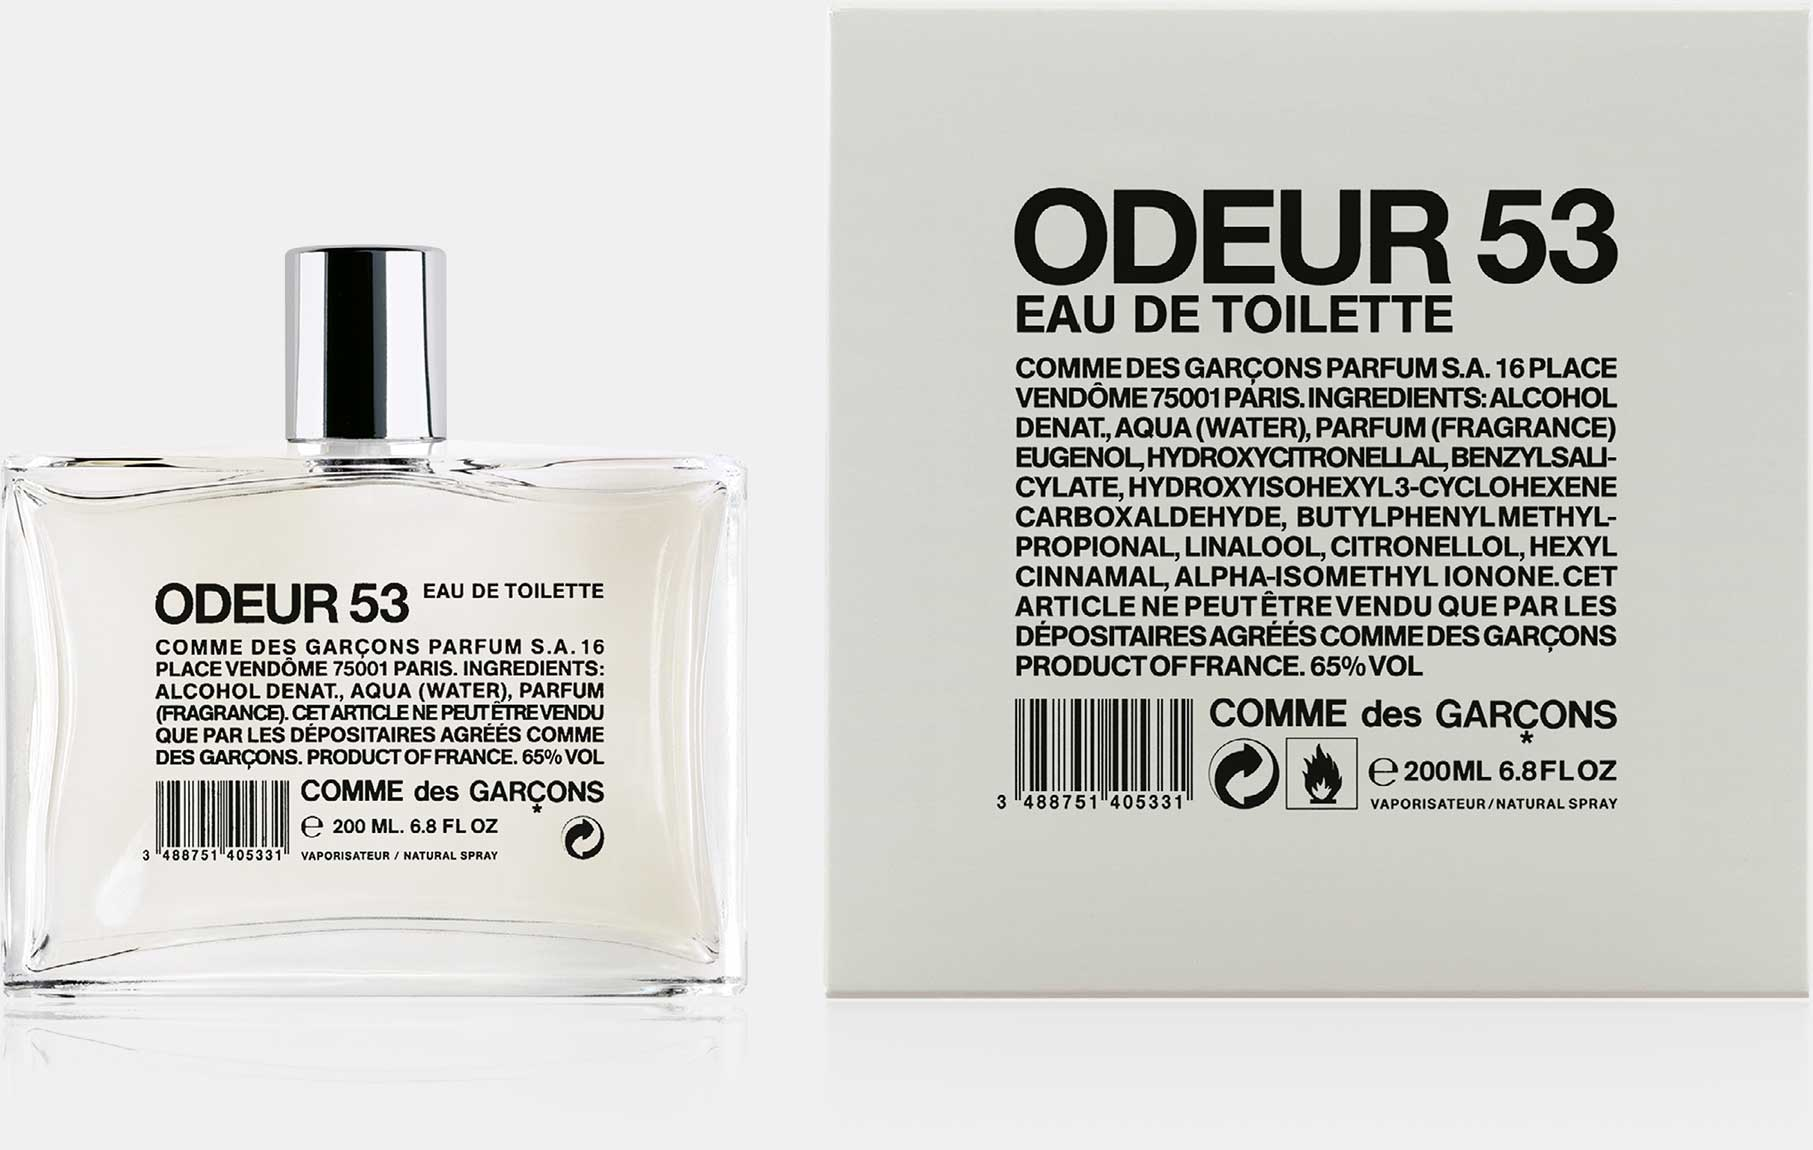 Odeur 53 - Eau de Toilette (200 ml natural spray)